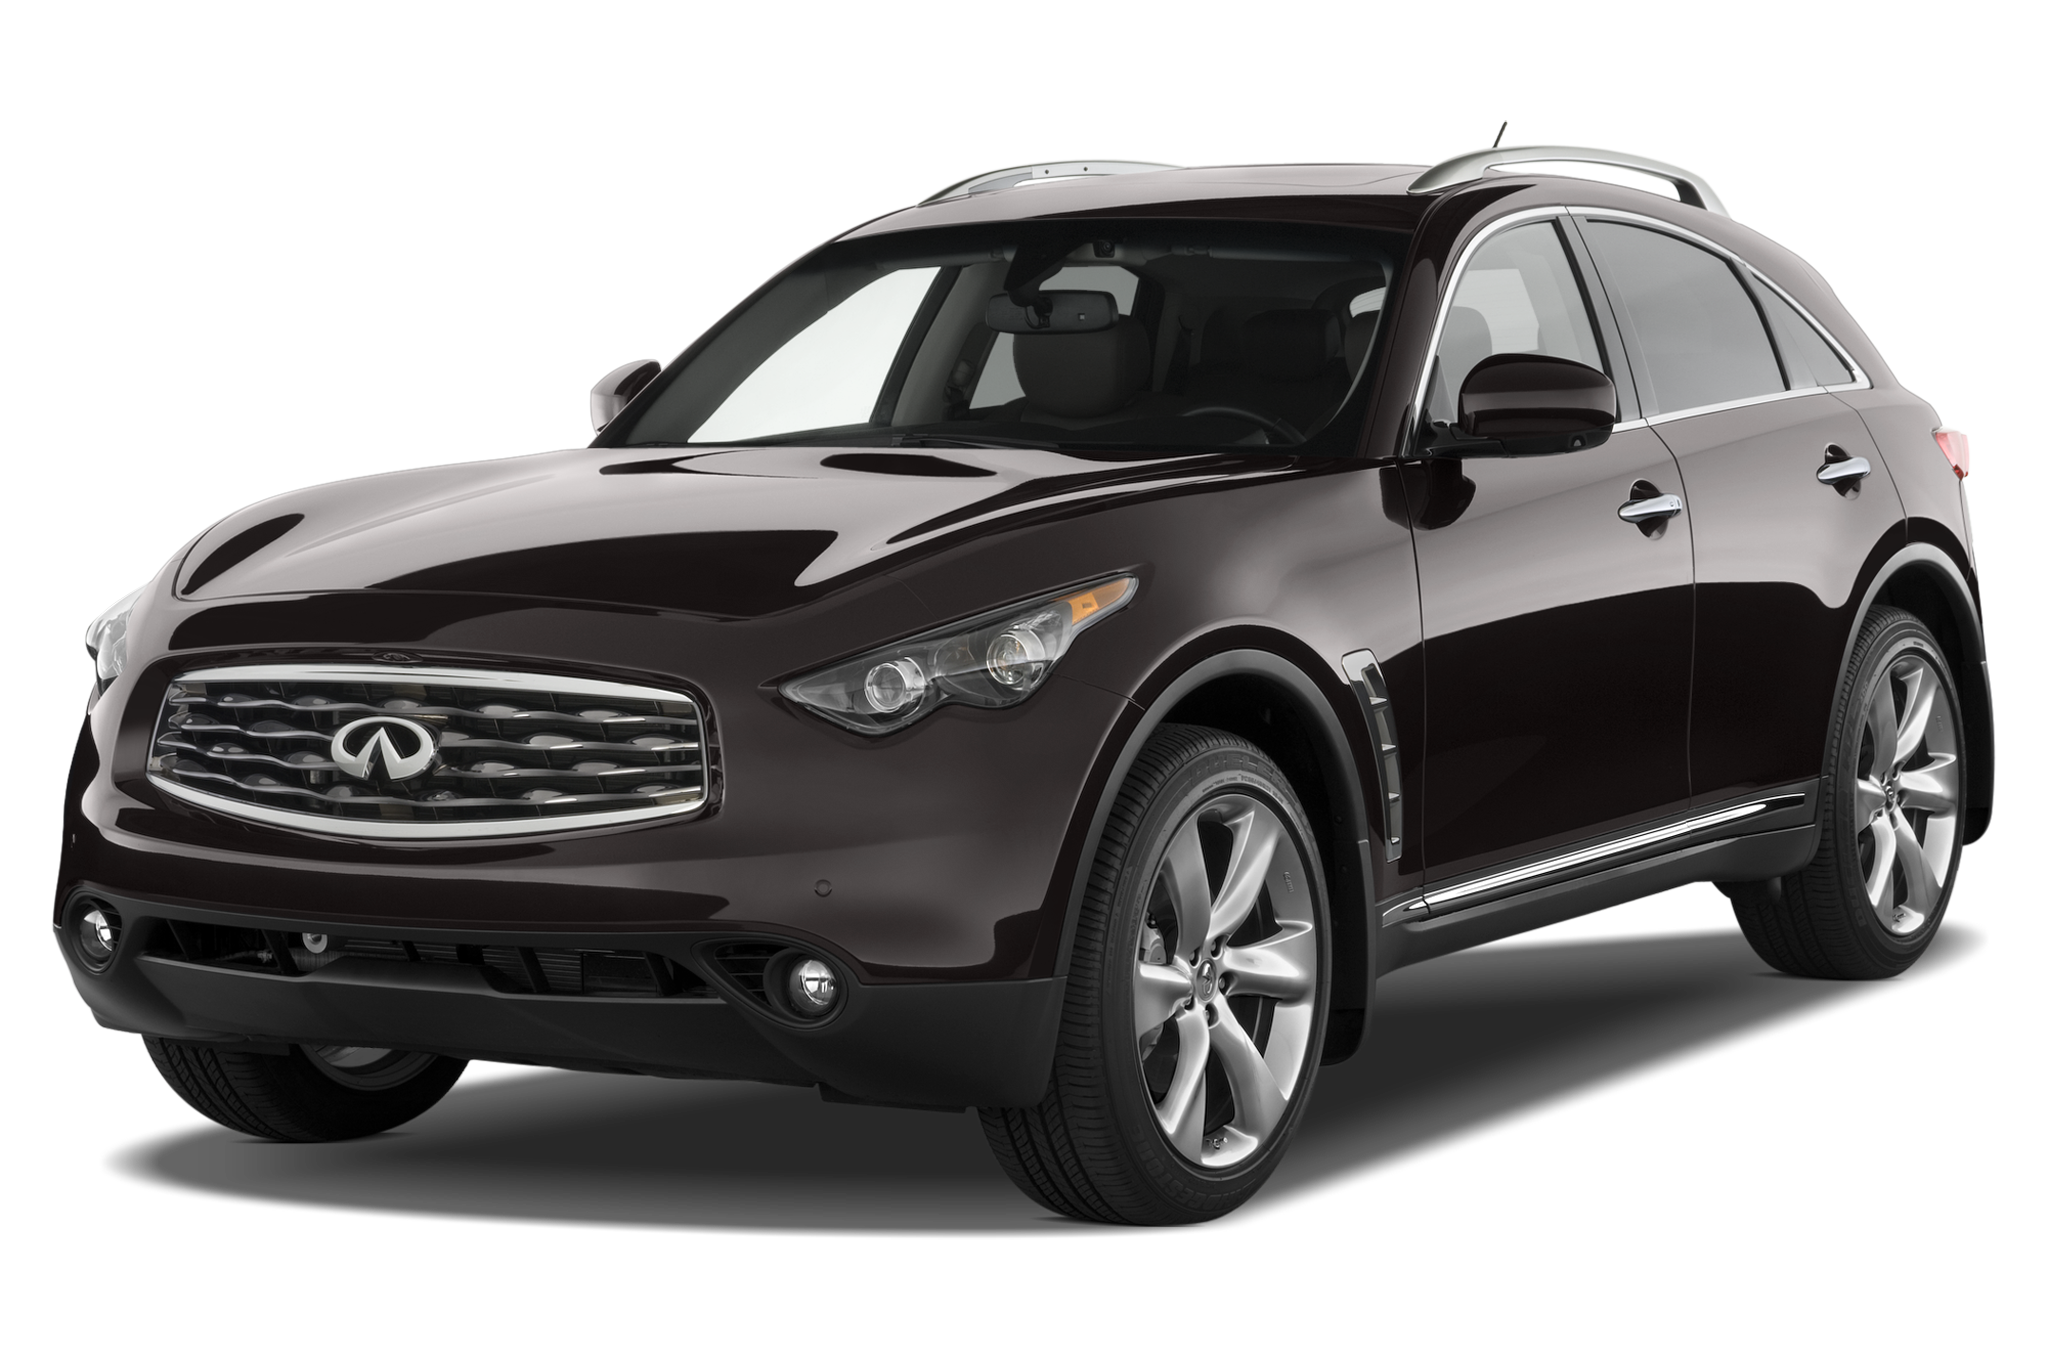 2011 infiniti fx35 reviews and rating | motortrend